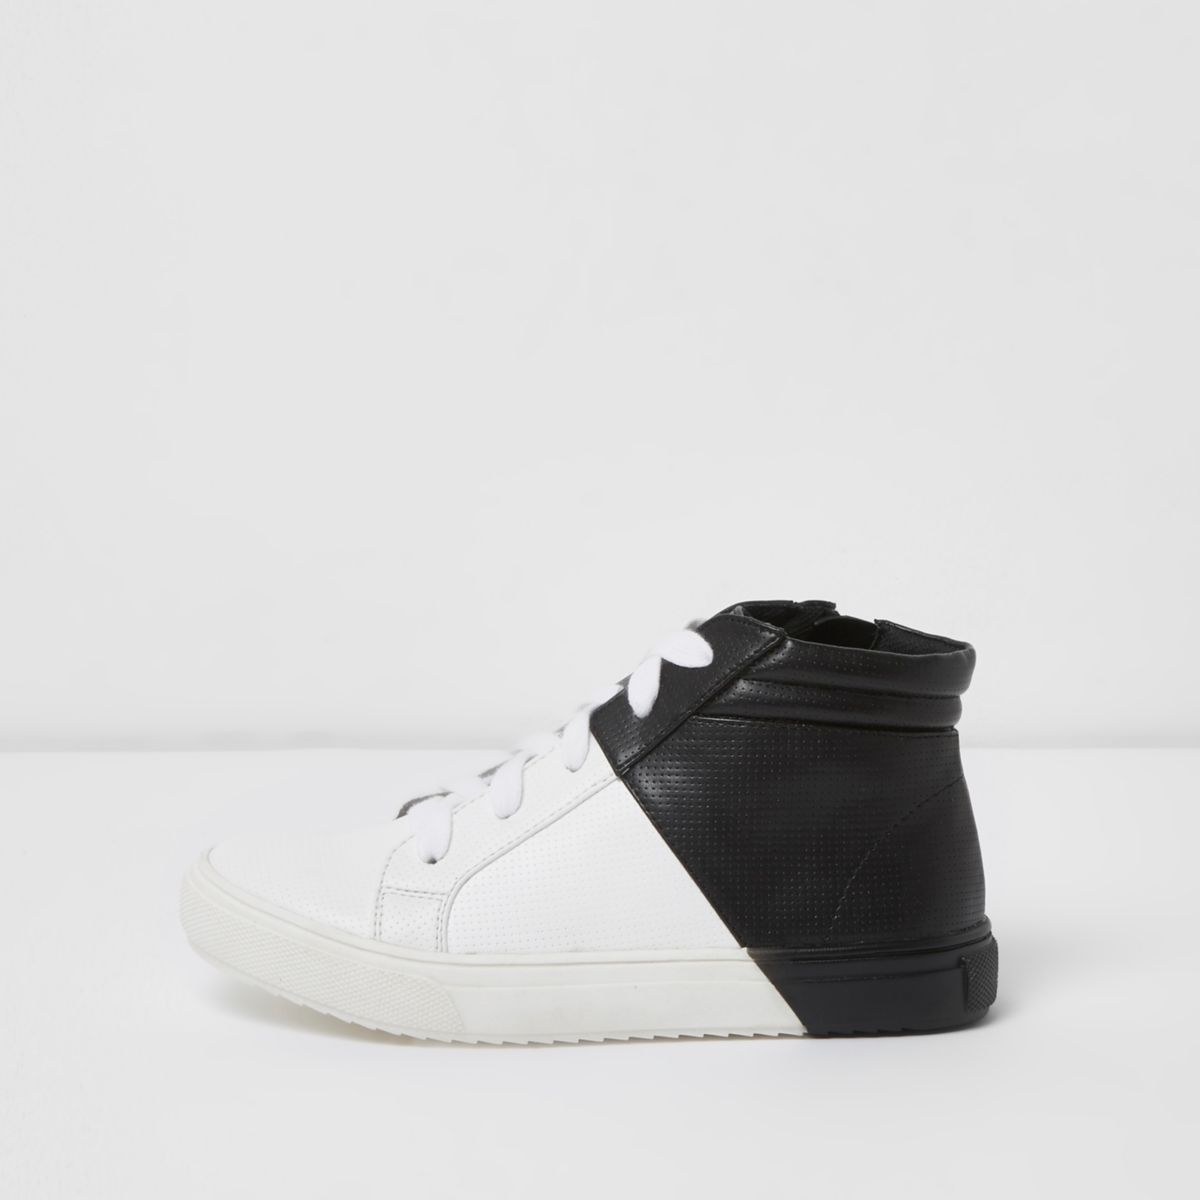 Boys white and black high top trianers